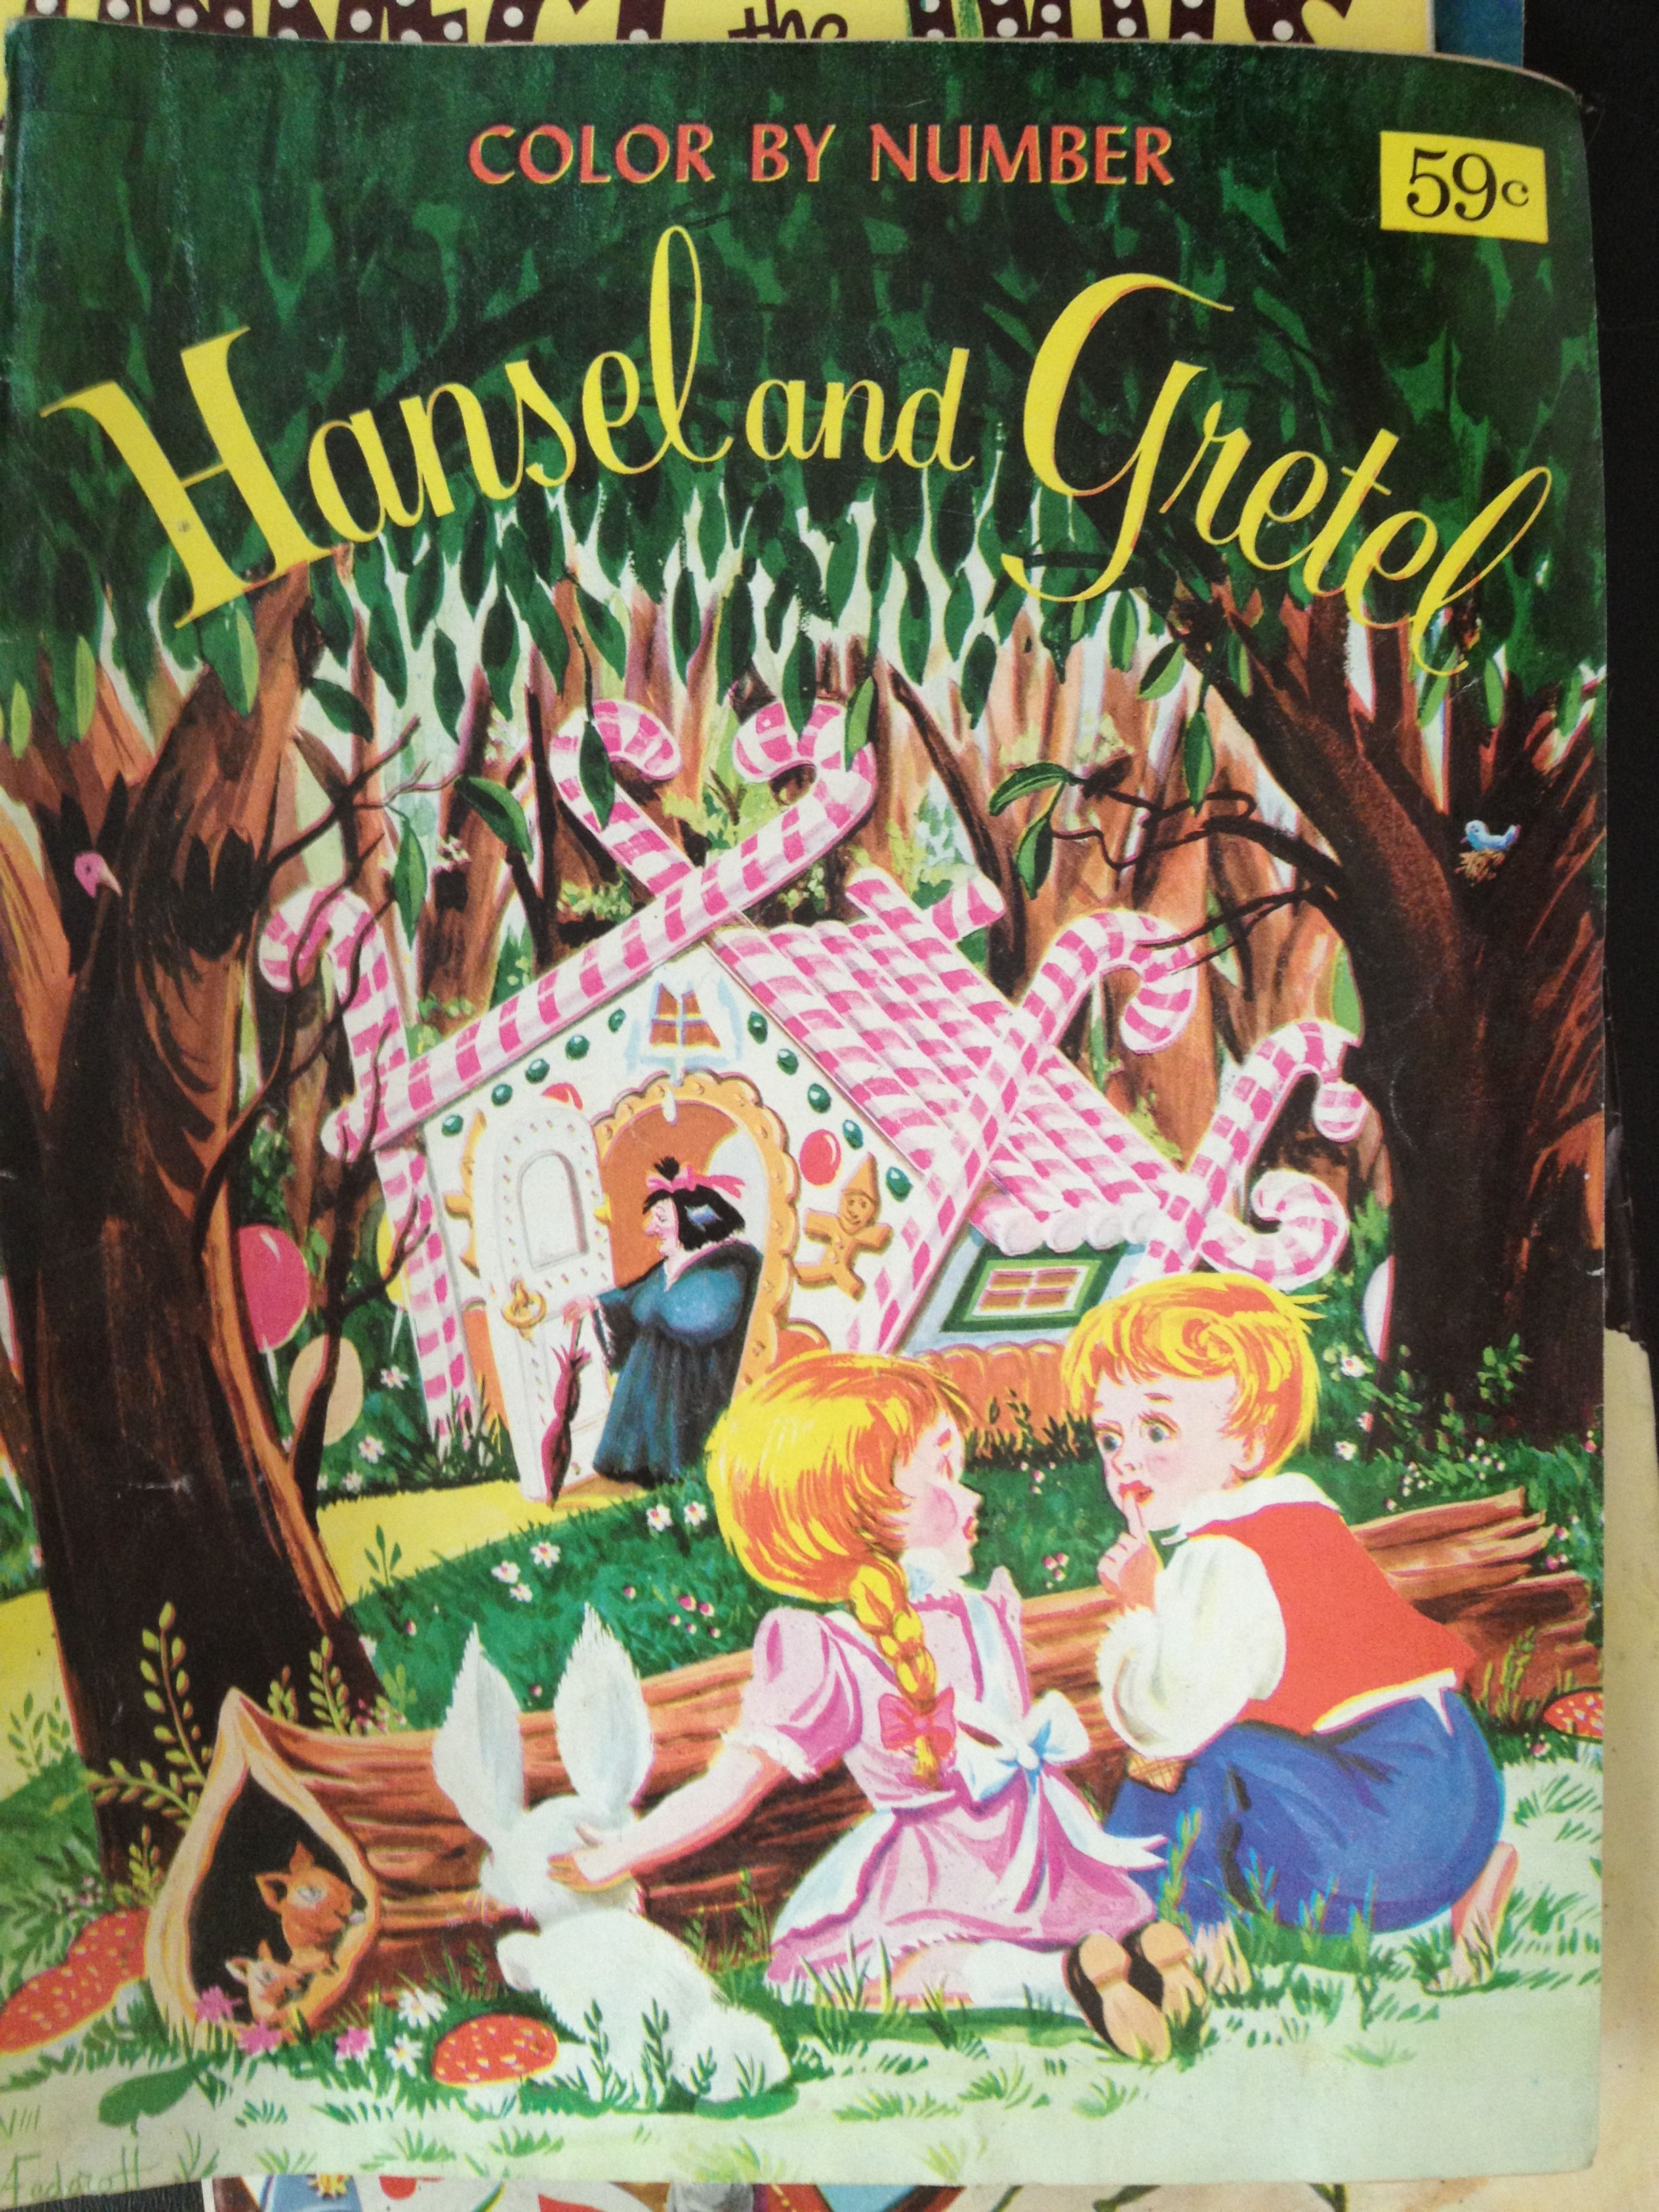 Another Vintage Childrens Coloring Book Cover Hansel Gretel Originally 59 Cents